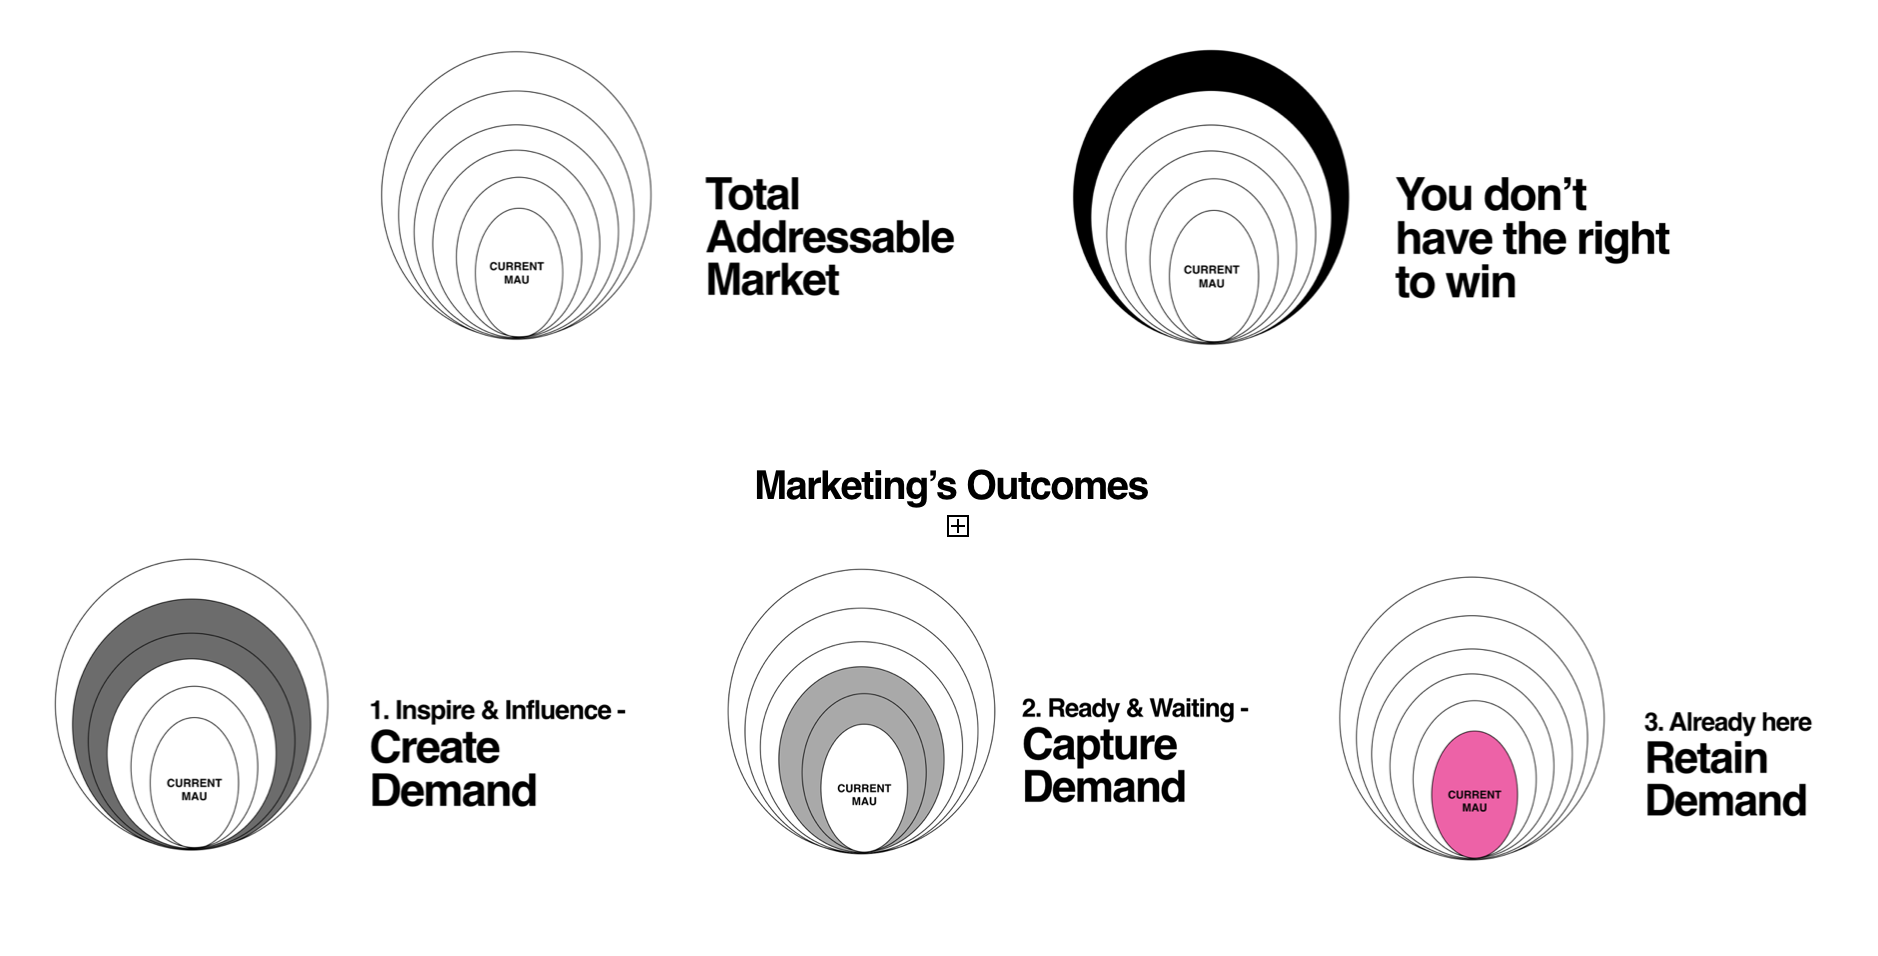 Don't Confuse Marketing's Outcomes From Its Outputs